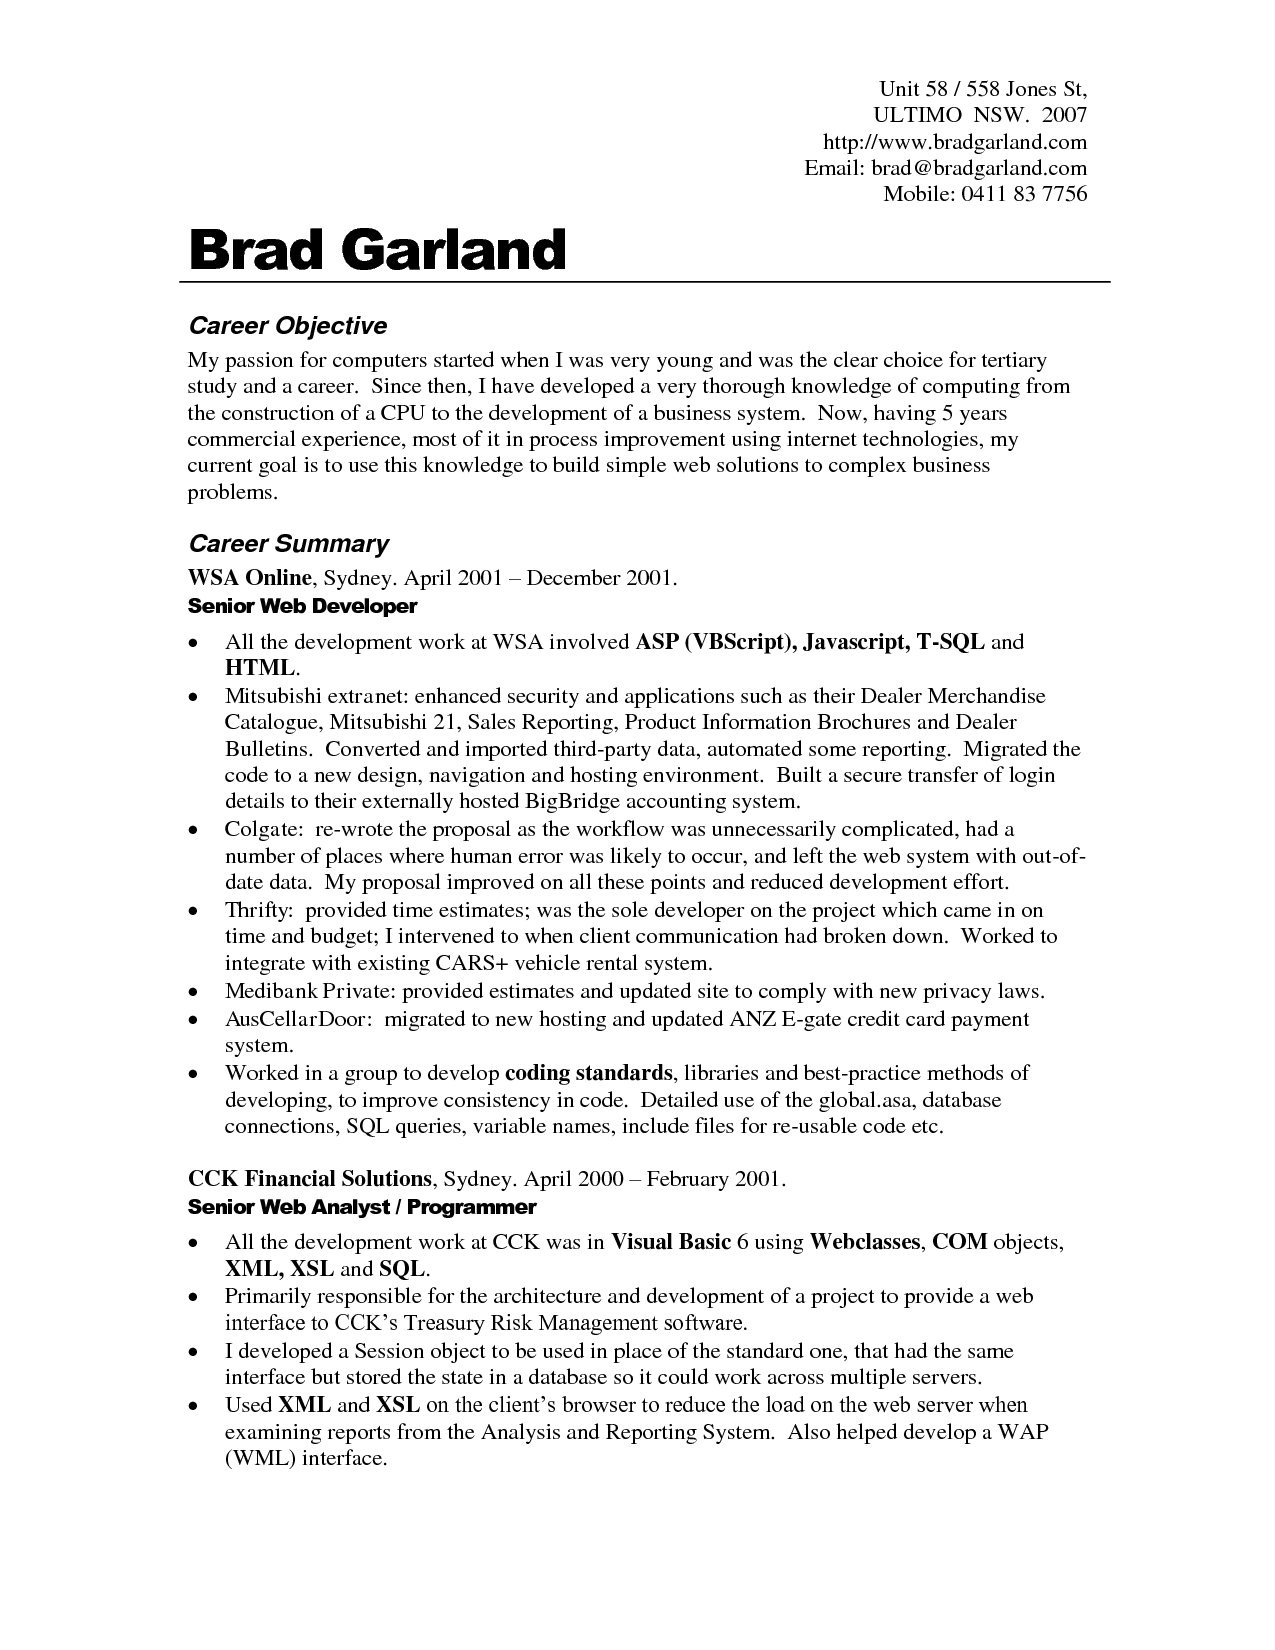 Resume Objectives Examples Best TemplateResume Objective Examples – Resume Objectives